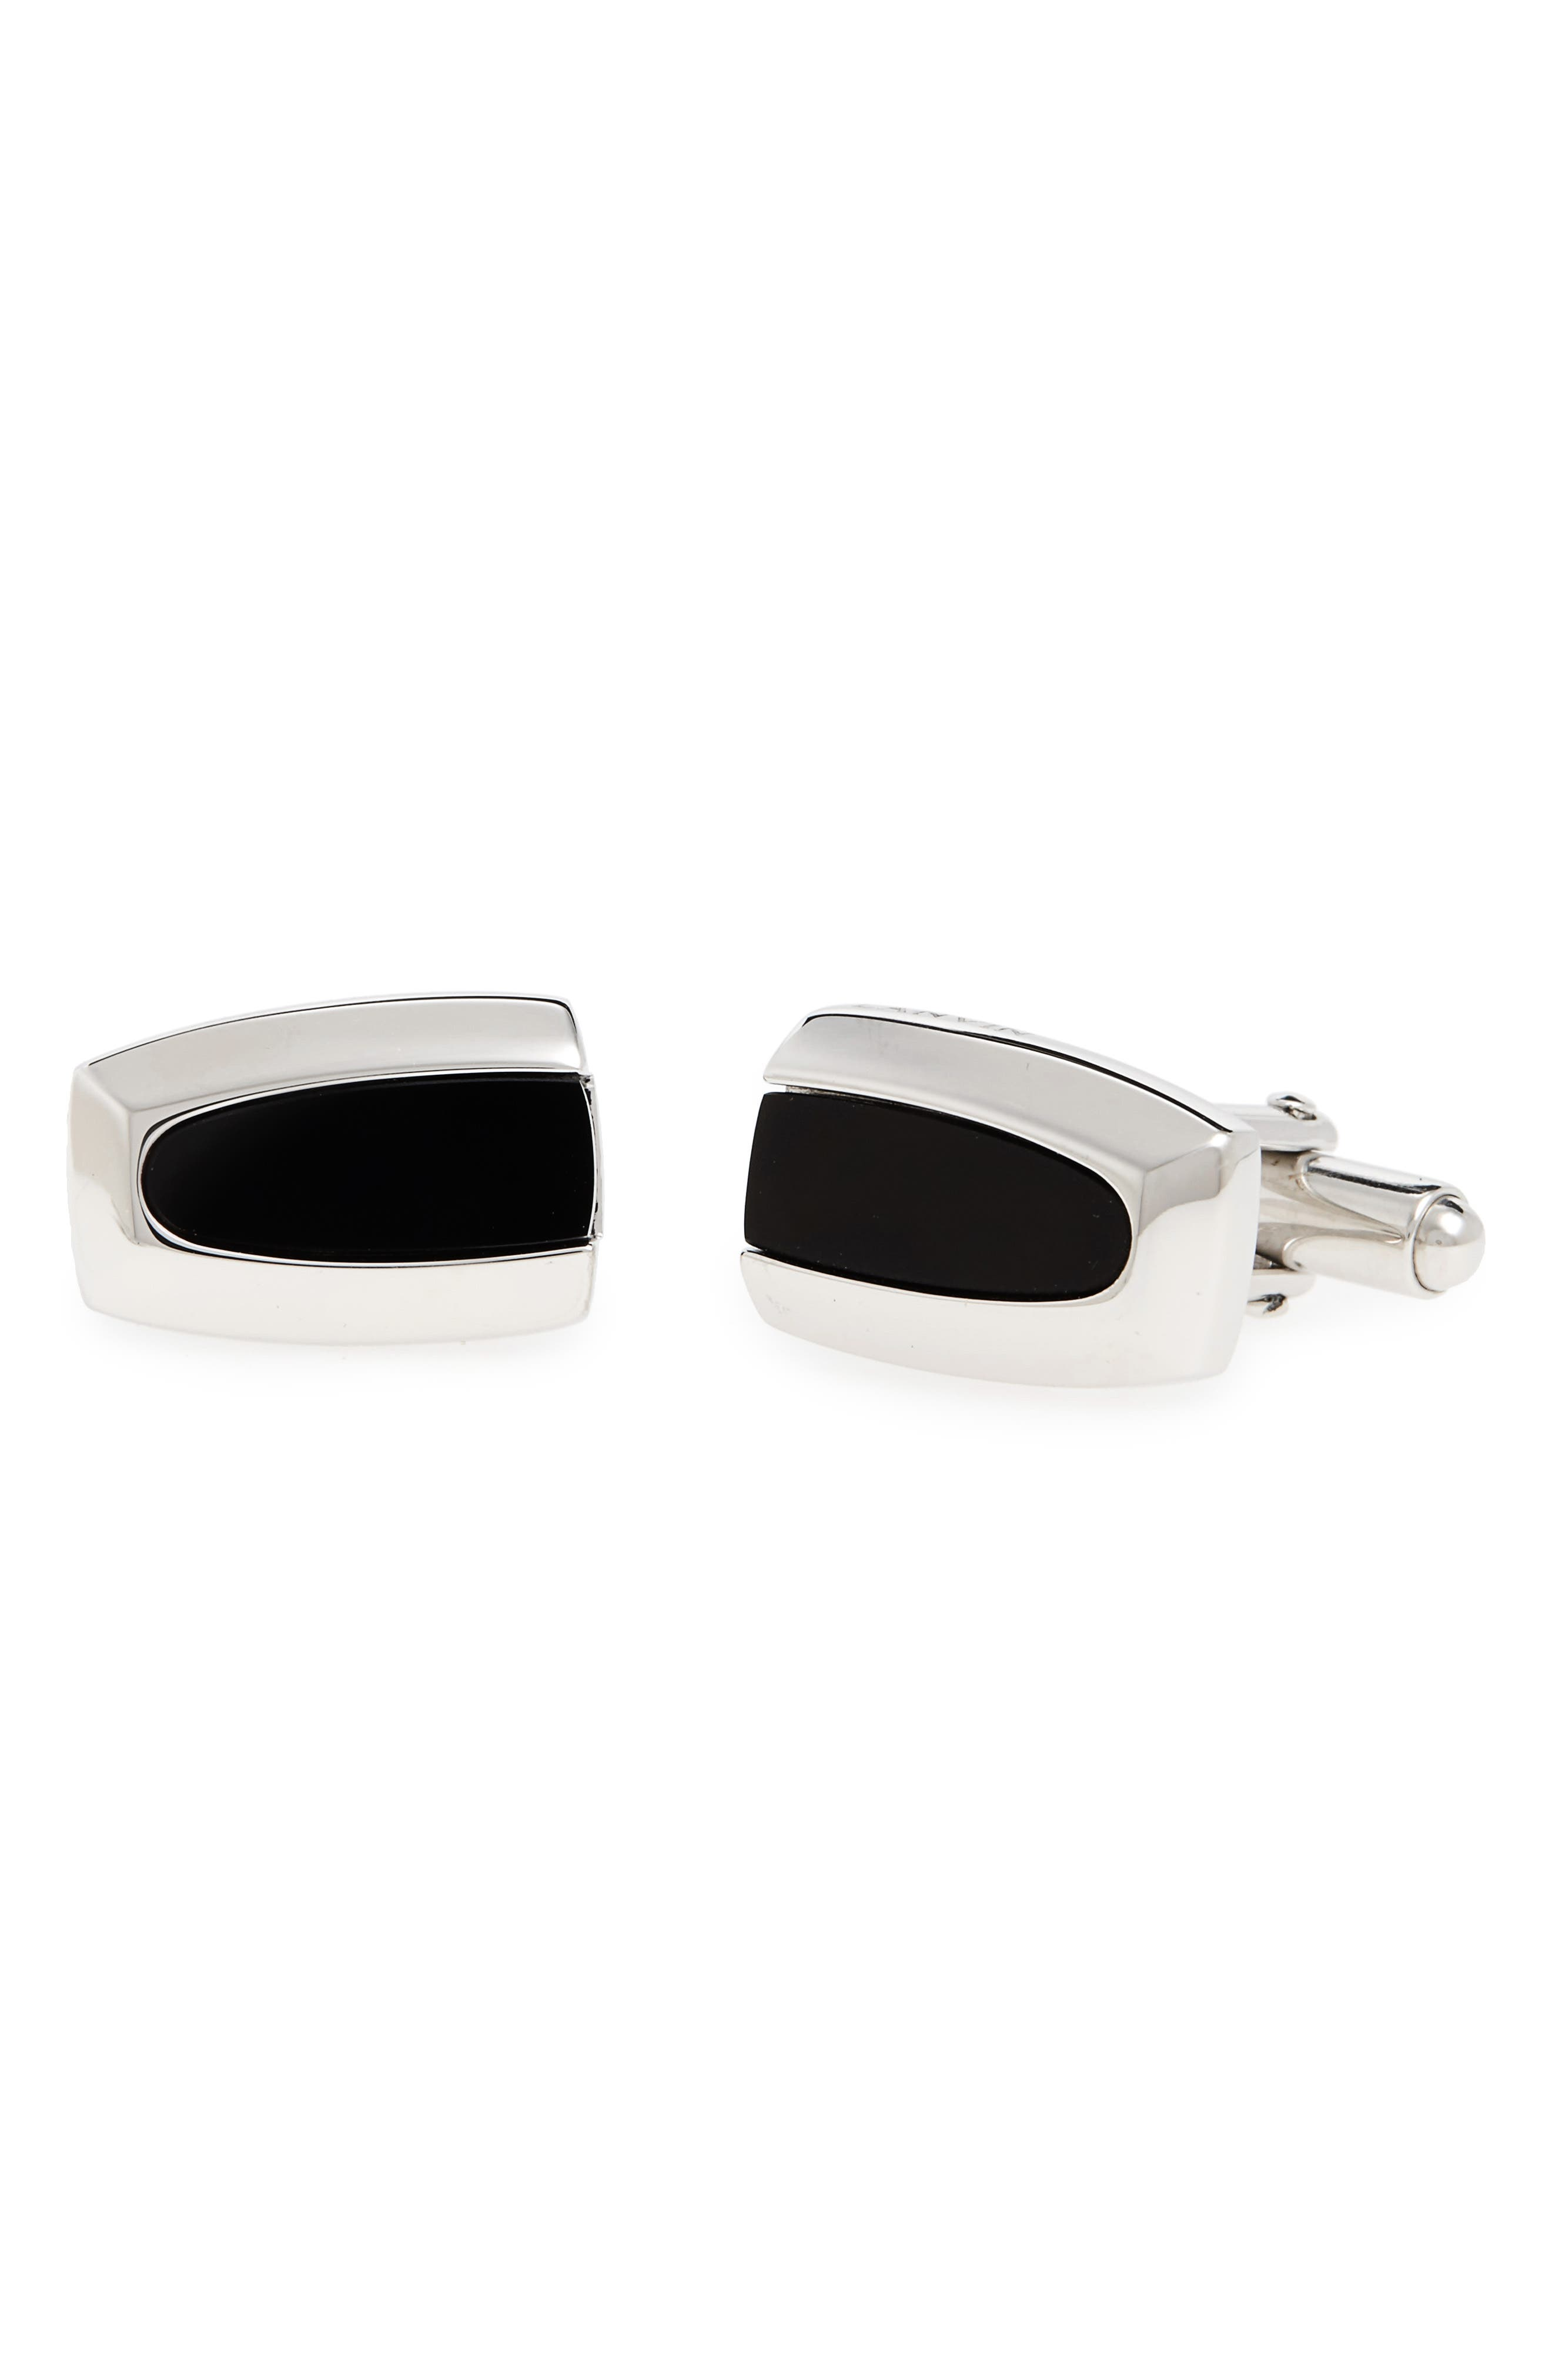 Onyx Cuff Links,                         Main,                         color, Rhodium Plated